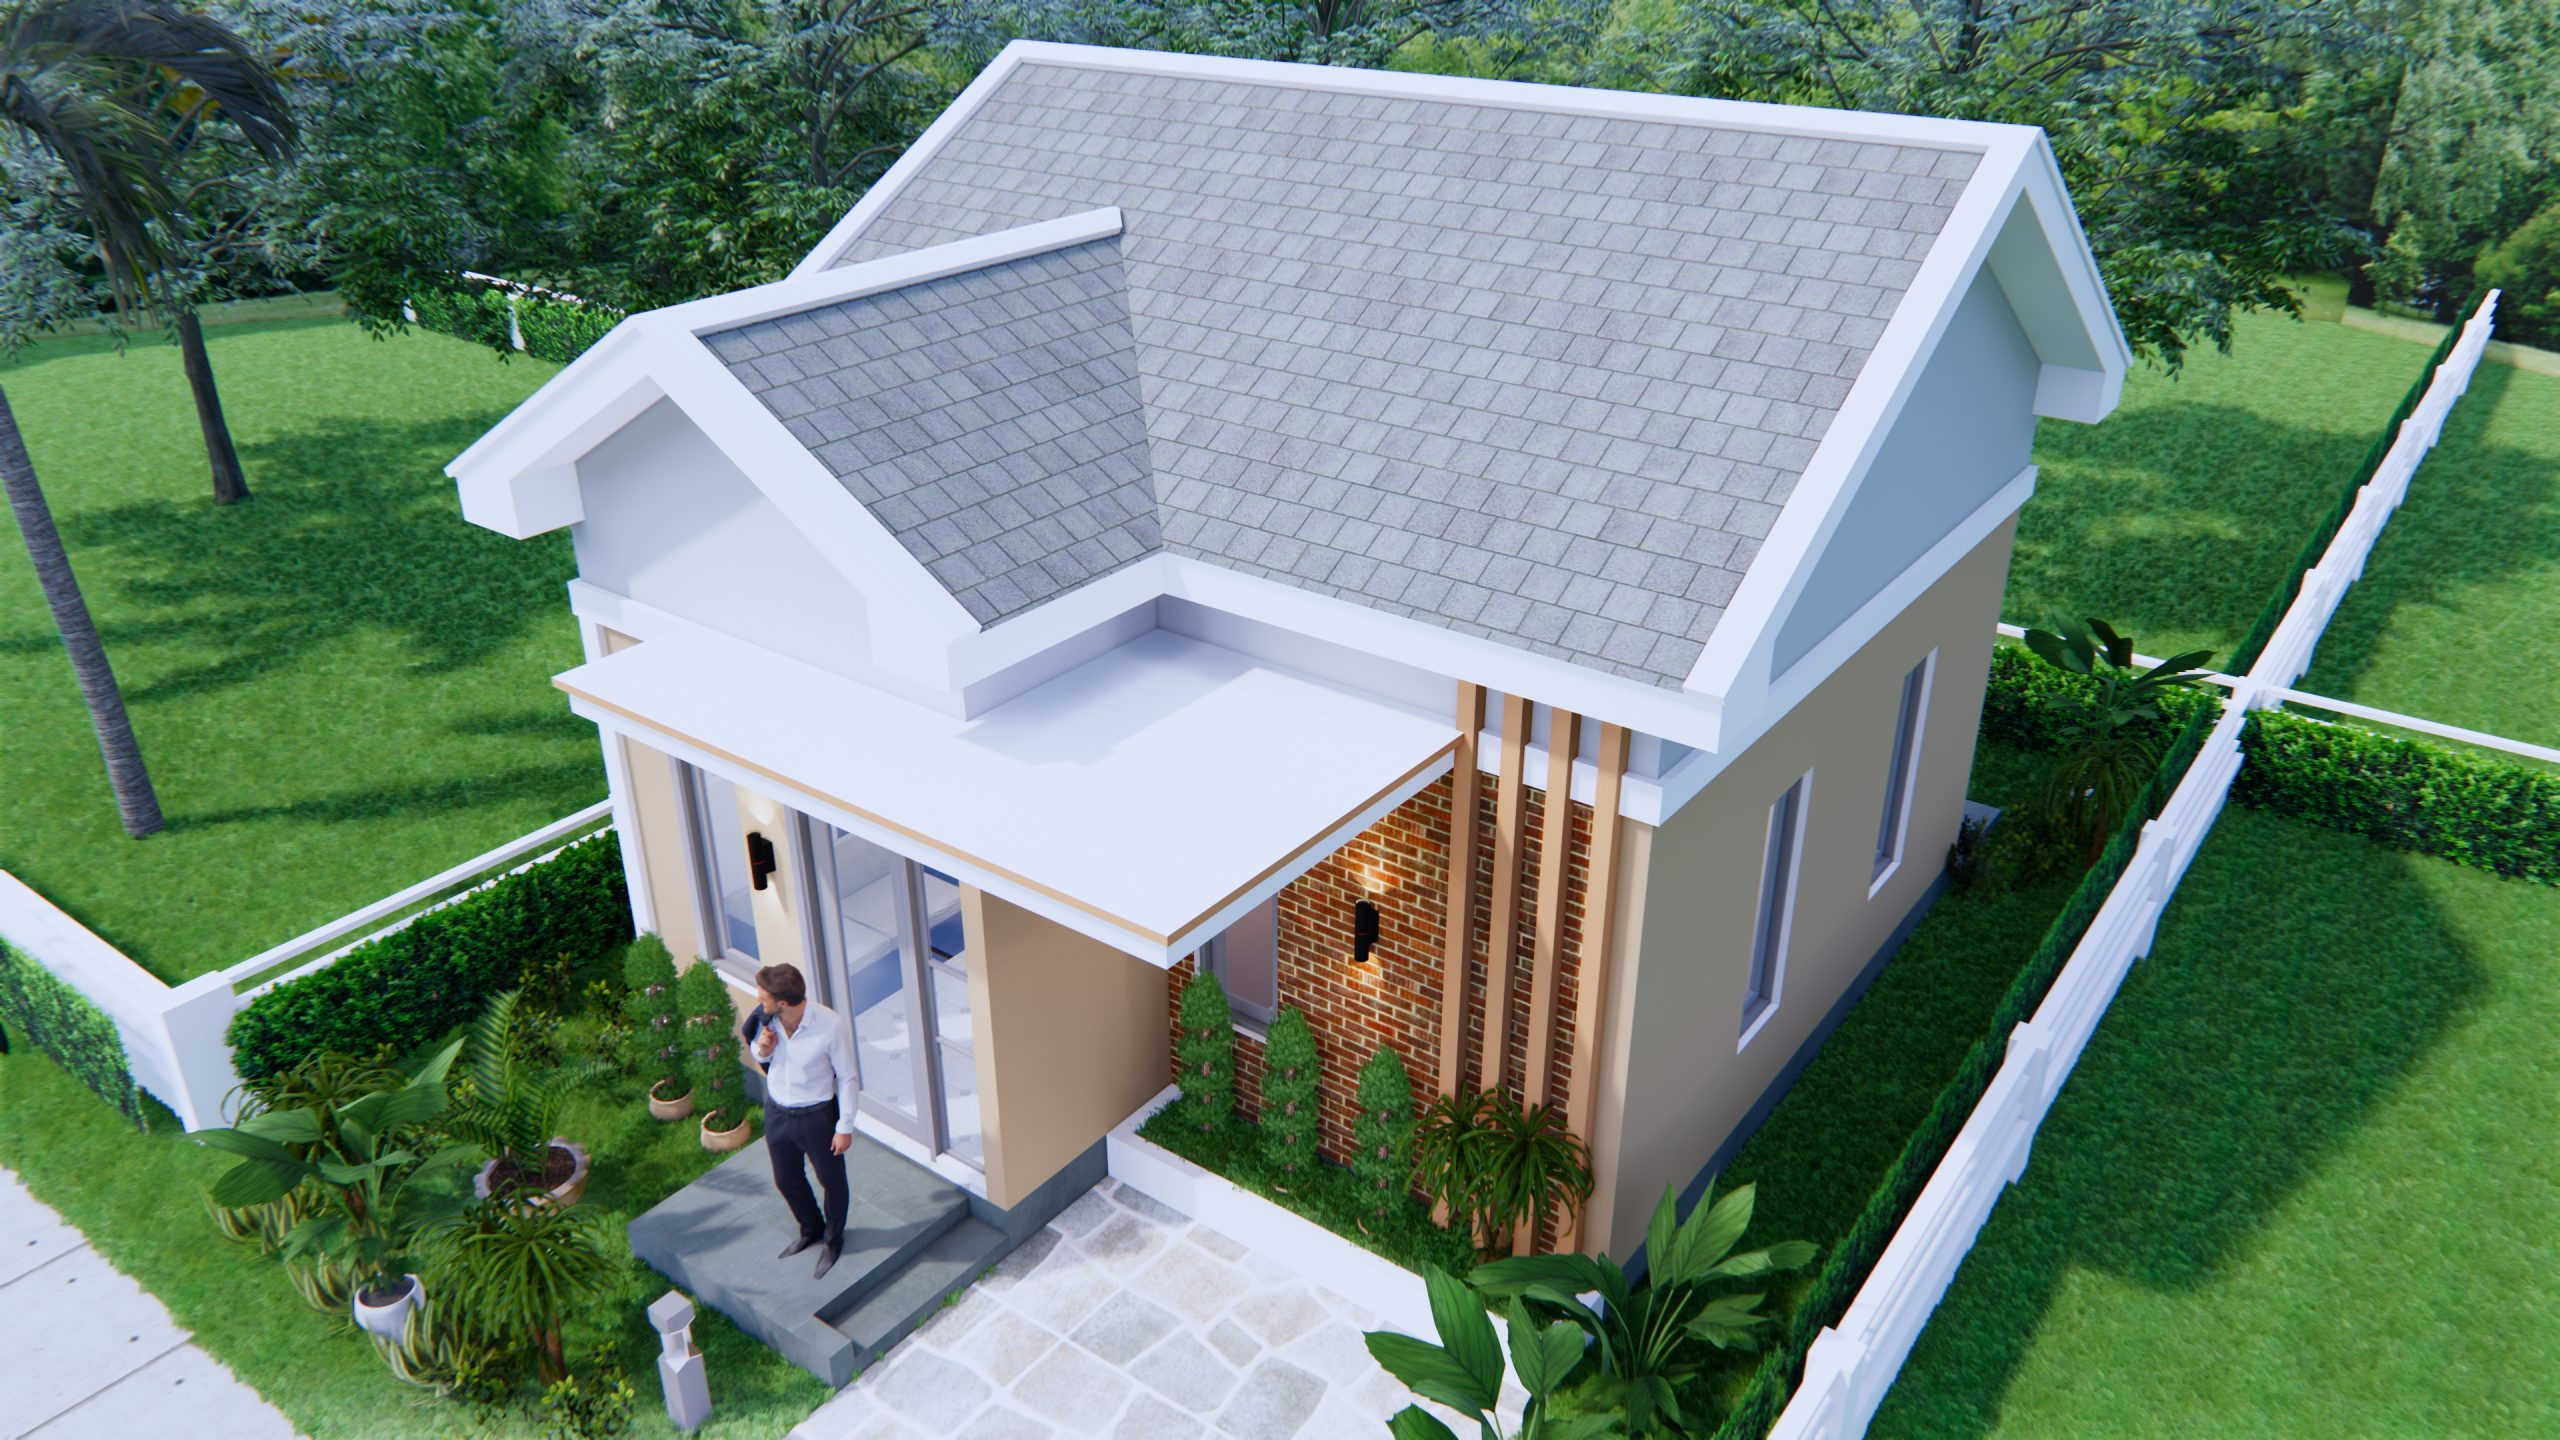 Small Brick Houses 6x7 Meter 20x23 Feet 2 Bed 1